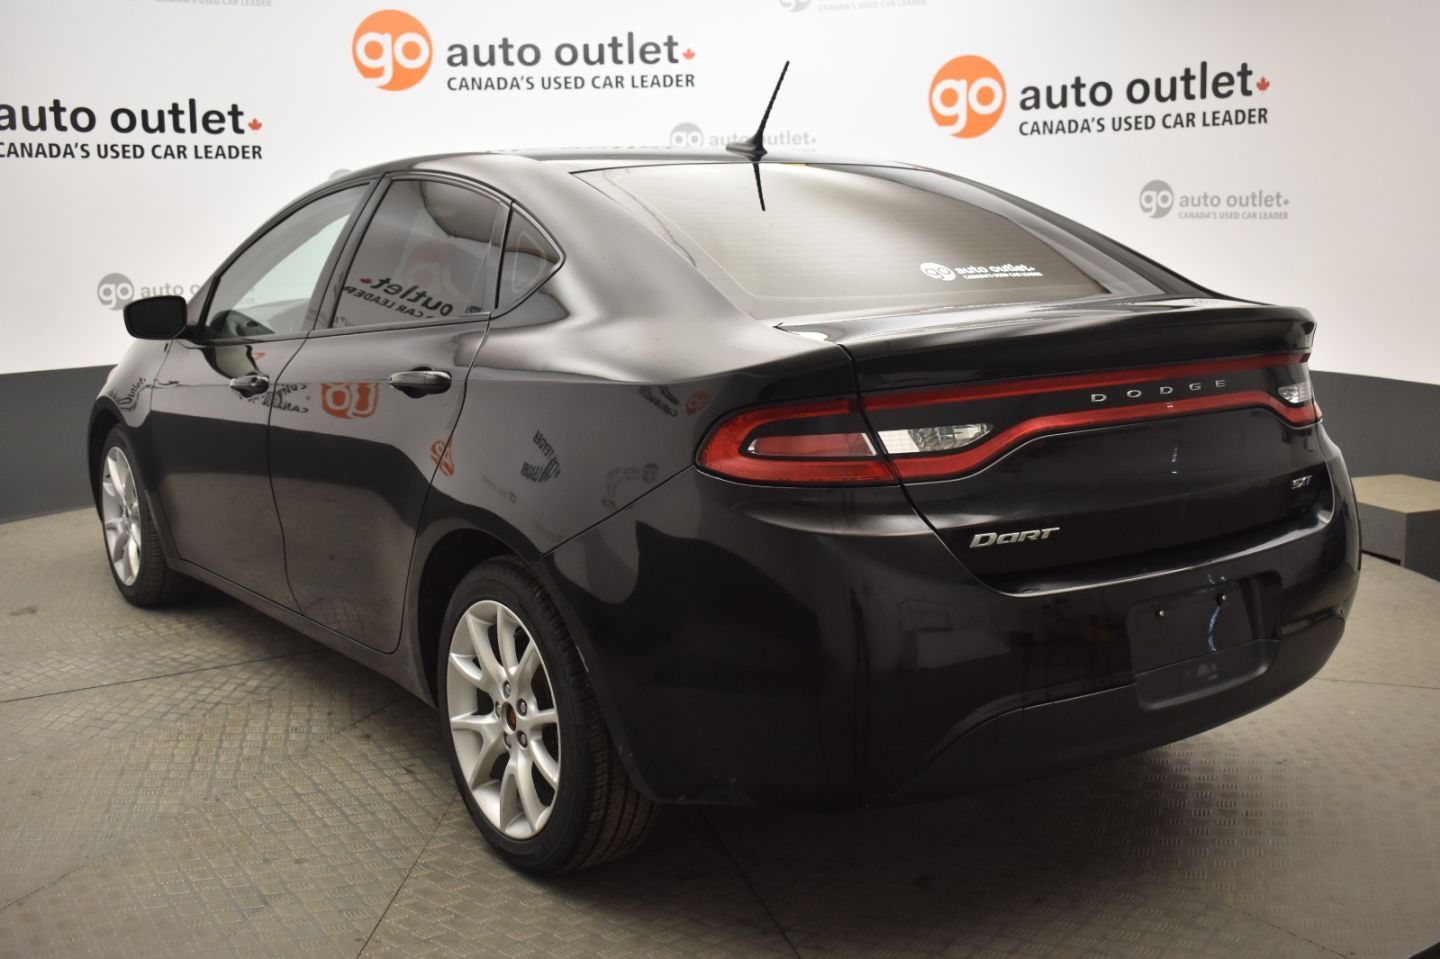 2013 Dodge Dart SXT for sale in Leduc, Alberta